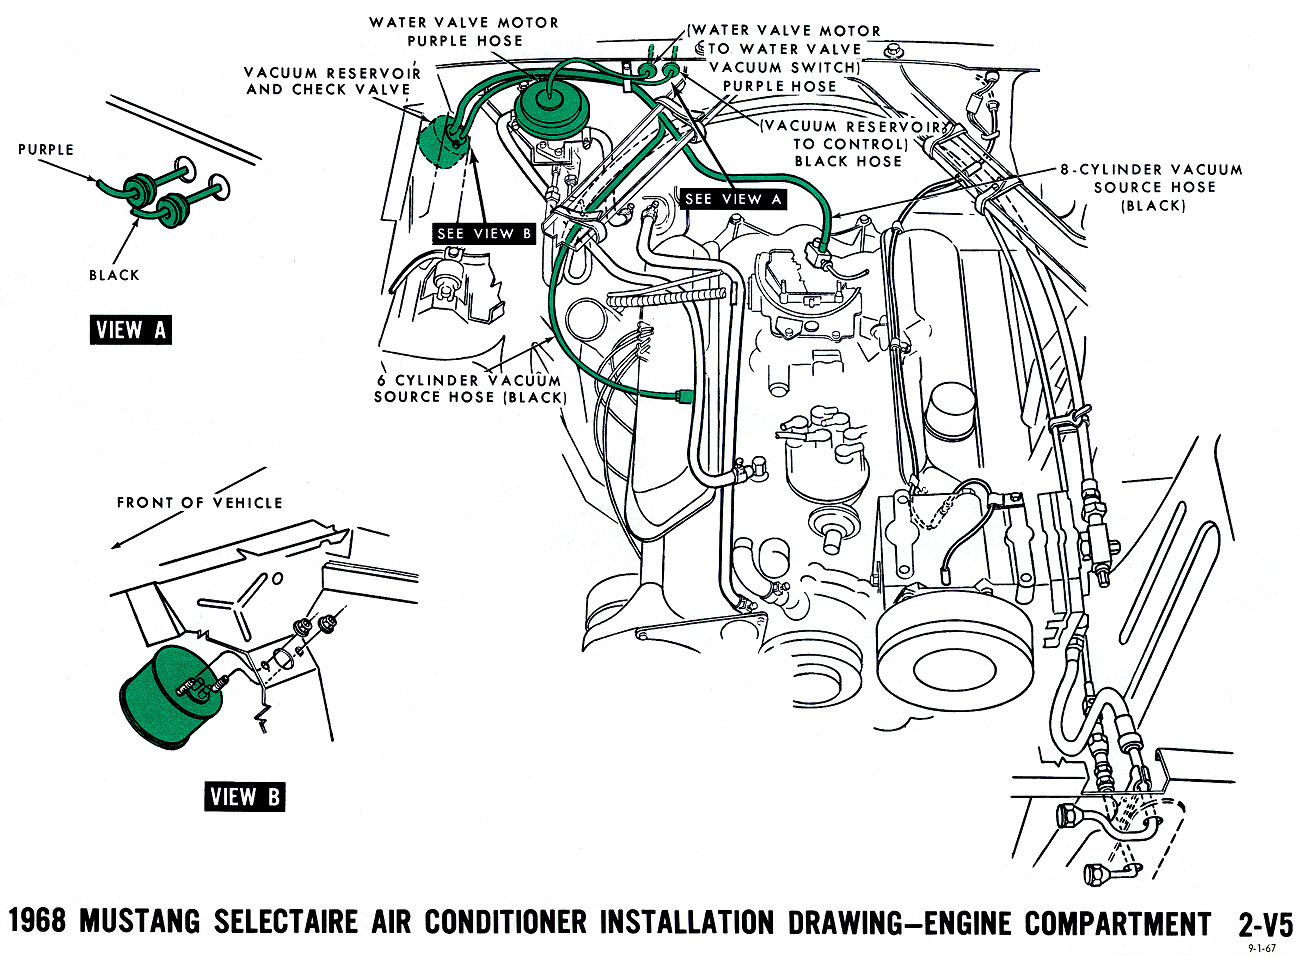 1967 Mustang Vacuum Diagram FULL Version HD Quality Vacuum Diagram -  THOMDIAGRAM.AS4A.FRDiagram Database - AS4A.FR